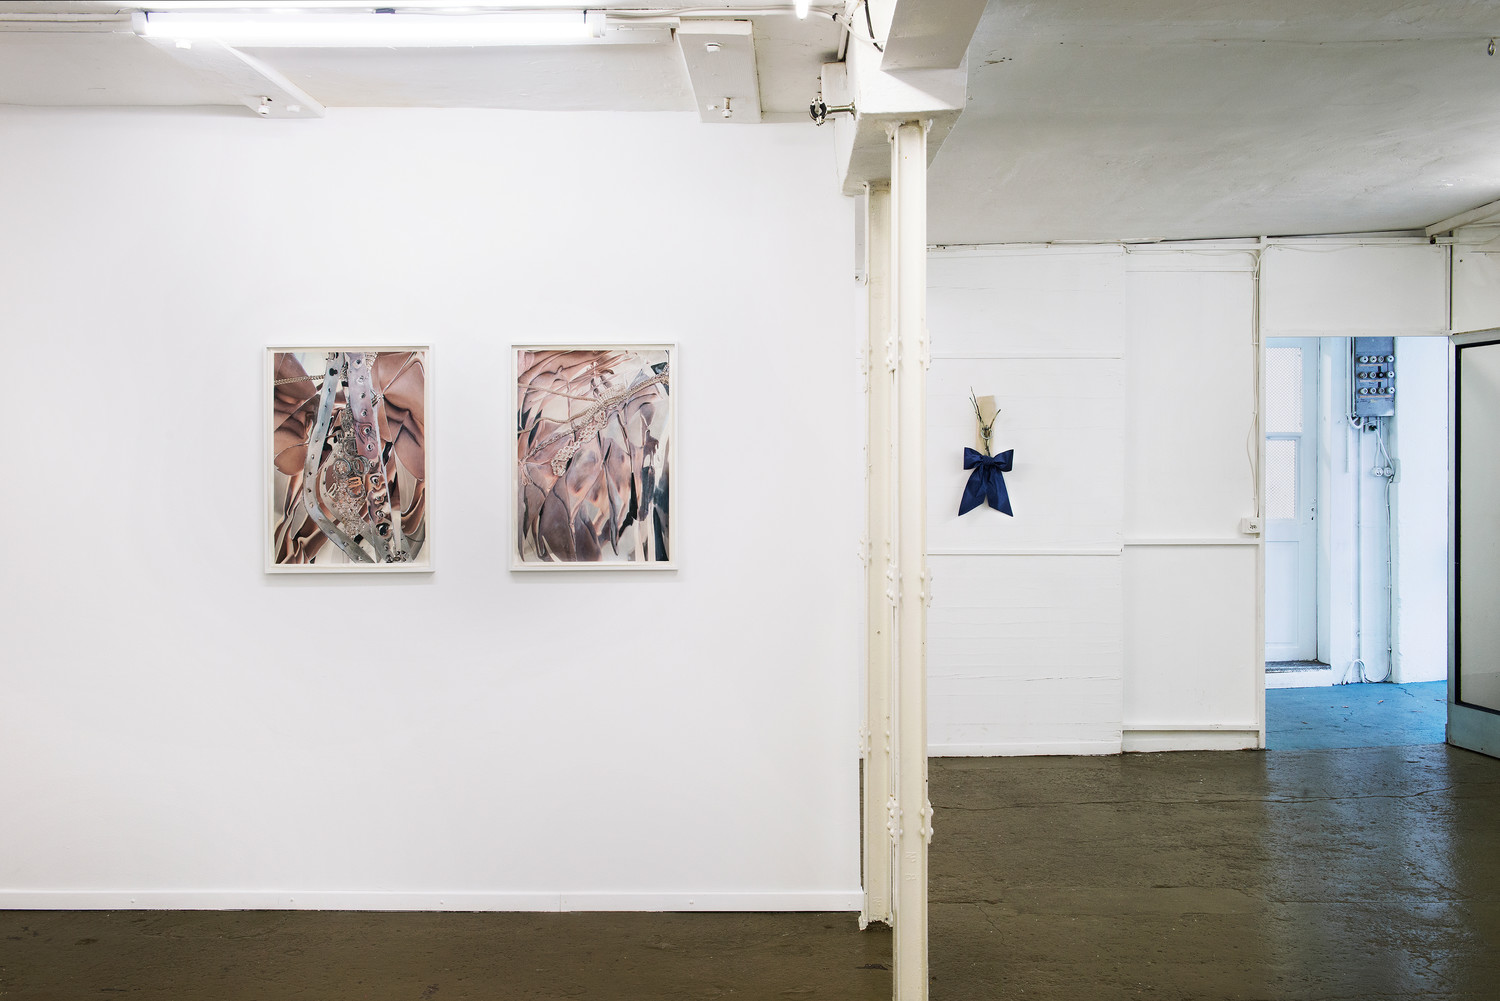 On the left: Manon Wertenbroek, Self-portrait 1 & 2, 2020, ink, acrylic and pencil on paper, framed, each 75 x 55,5 x 3 cm, On the right: Roman Gysin, Welcome Home II, 2018, wood, fabric, glue, chalk, 45 x 23 x 17 cm — © Manon Wertenbroek